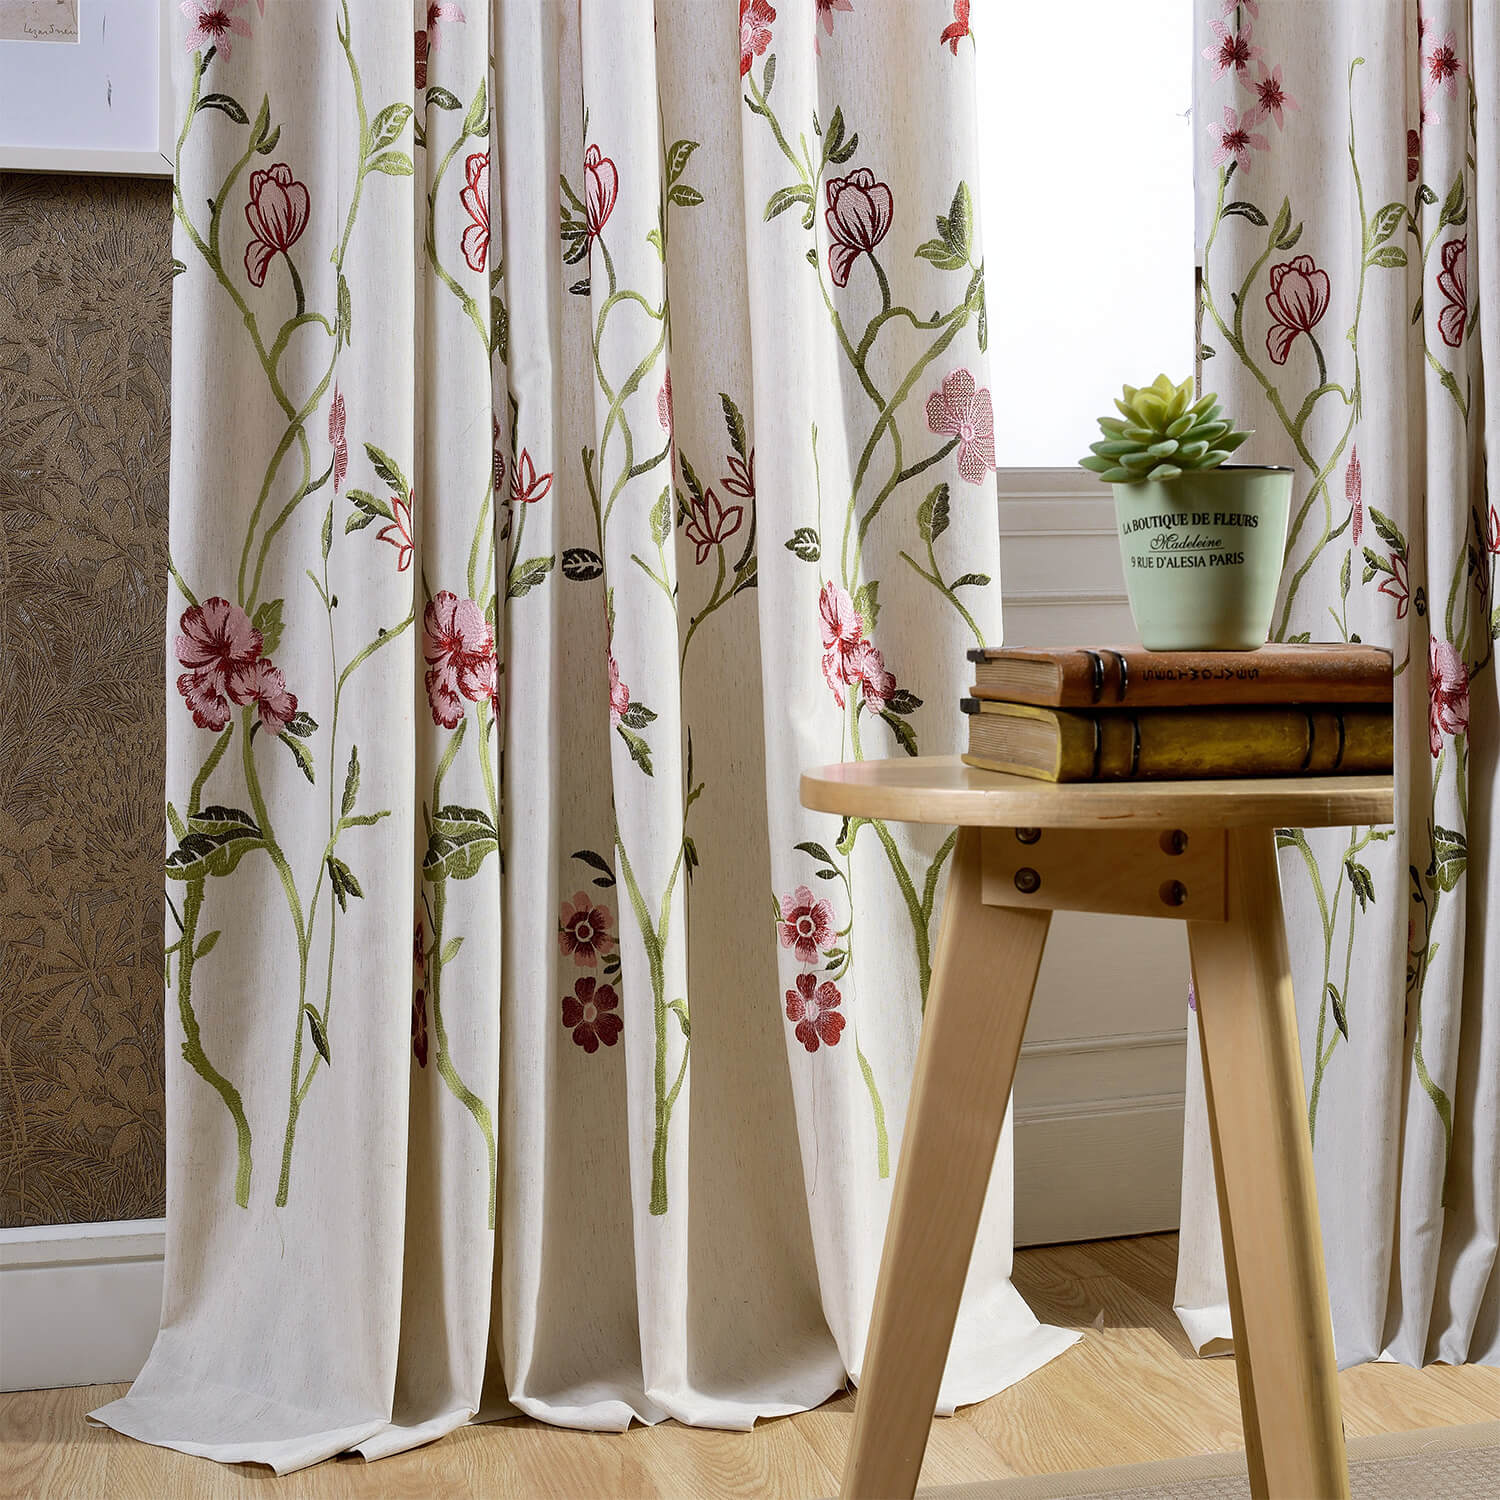 Red Flower Linen Curtains Exquisite Embroidered Drapes for Living Room - Anady Top Space Design